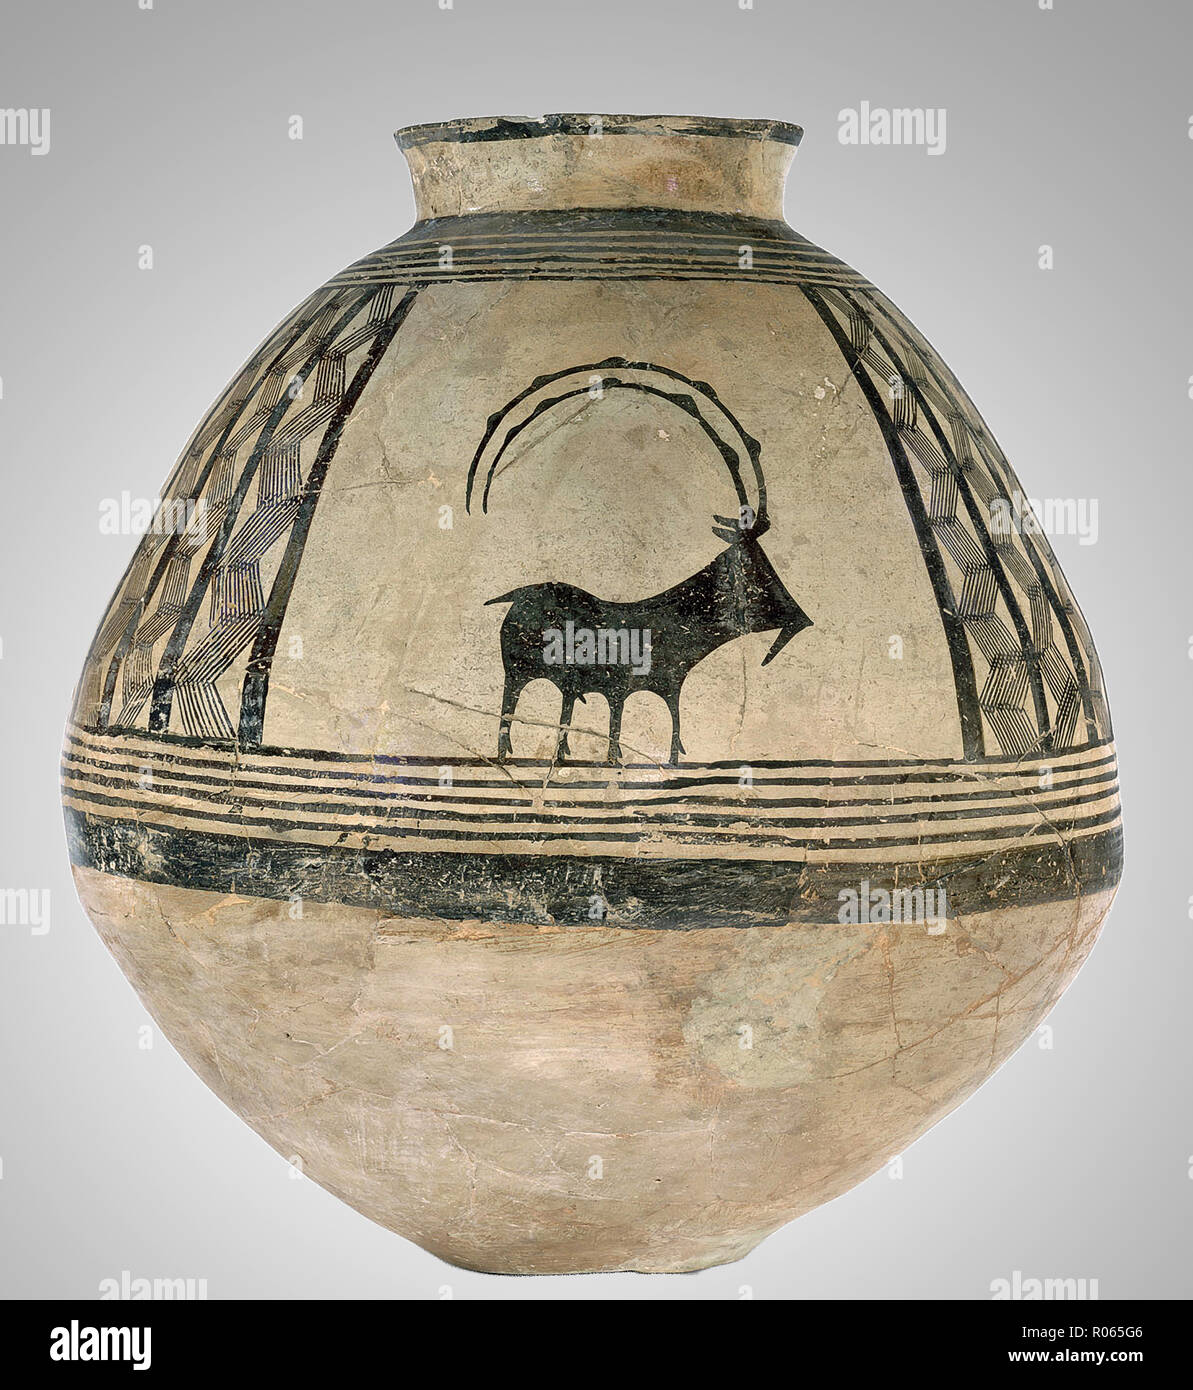 6380. Ceramic Jar decorated with a goat drawing, Iran, Chalcolithic period, 4nd. millennium BC Stock Photo